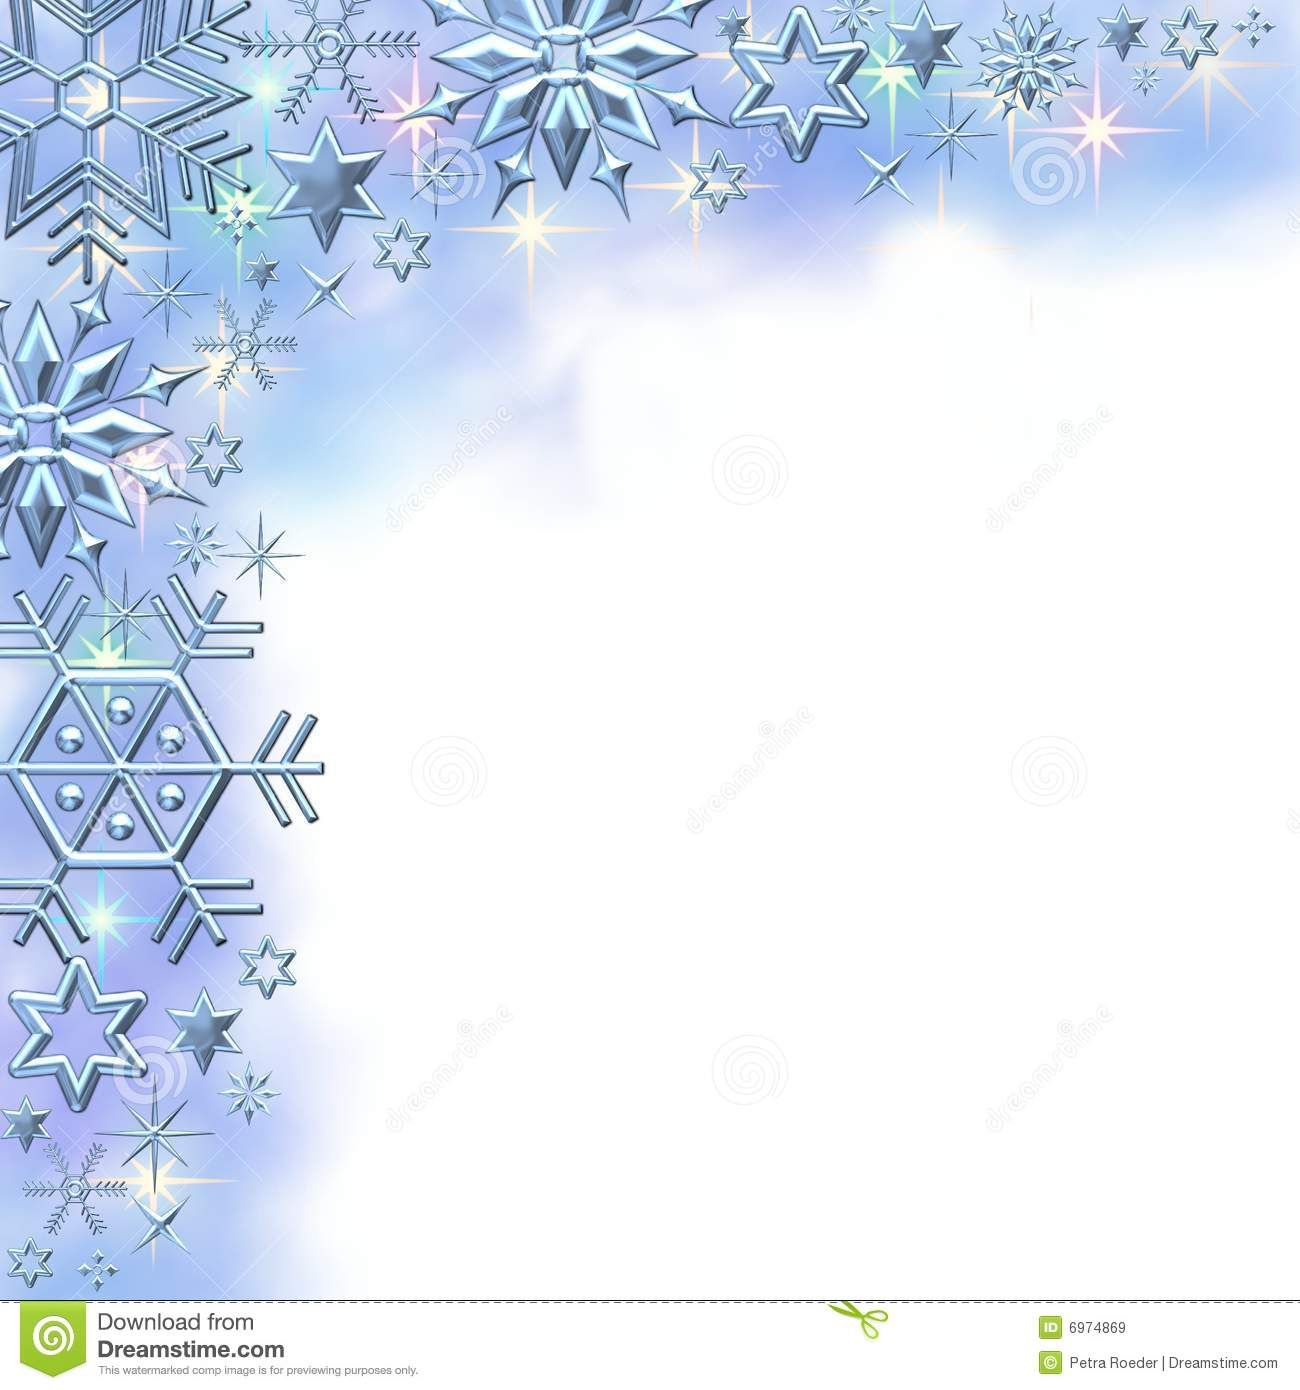 Clip Art Borders Winter Snowflake Border Free Stationery Paper Christmas Graphics